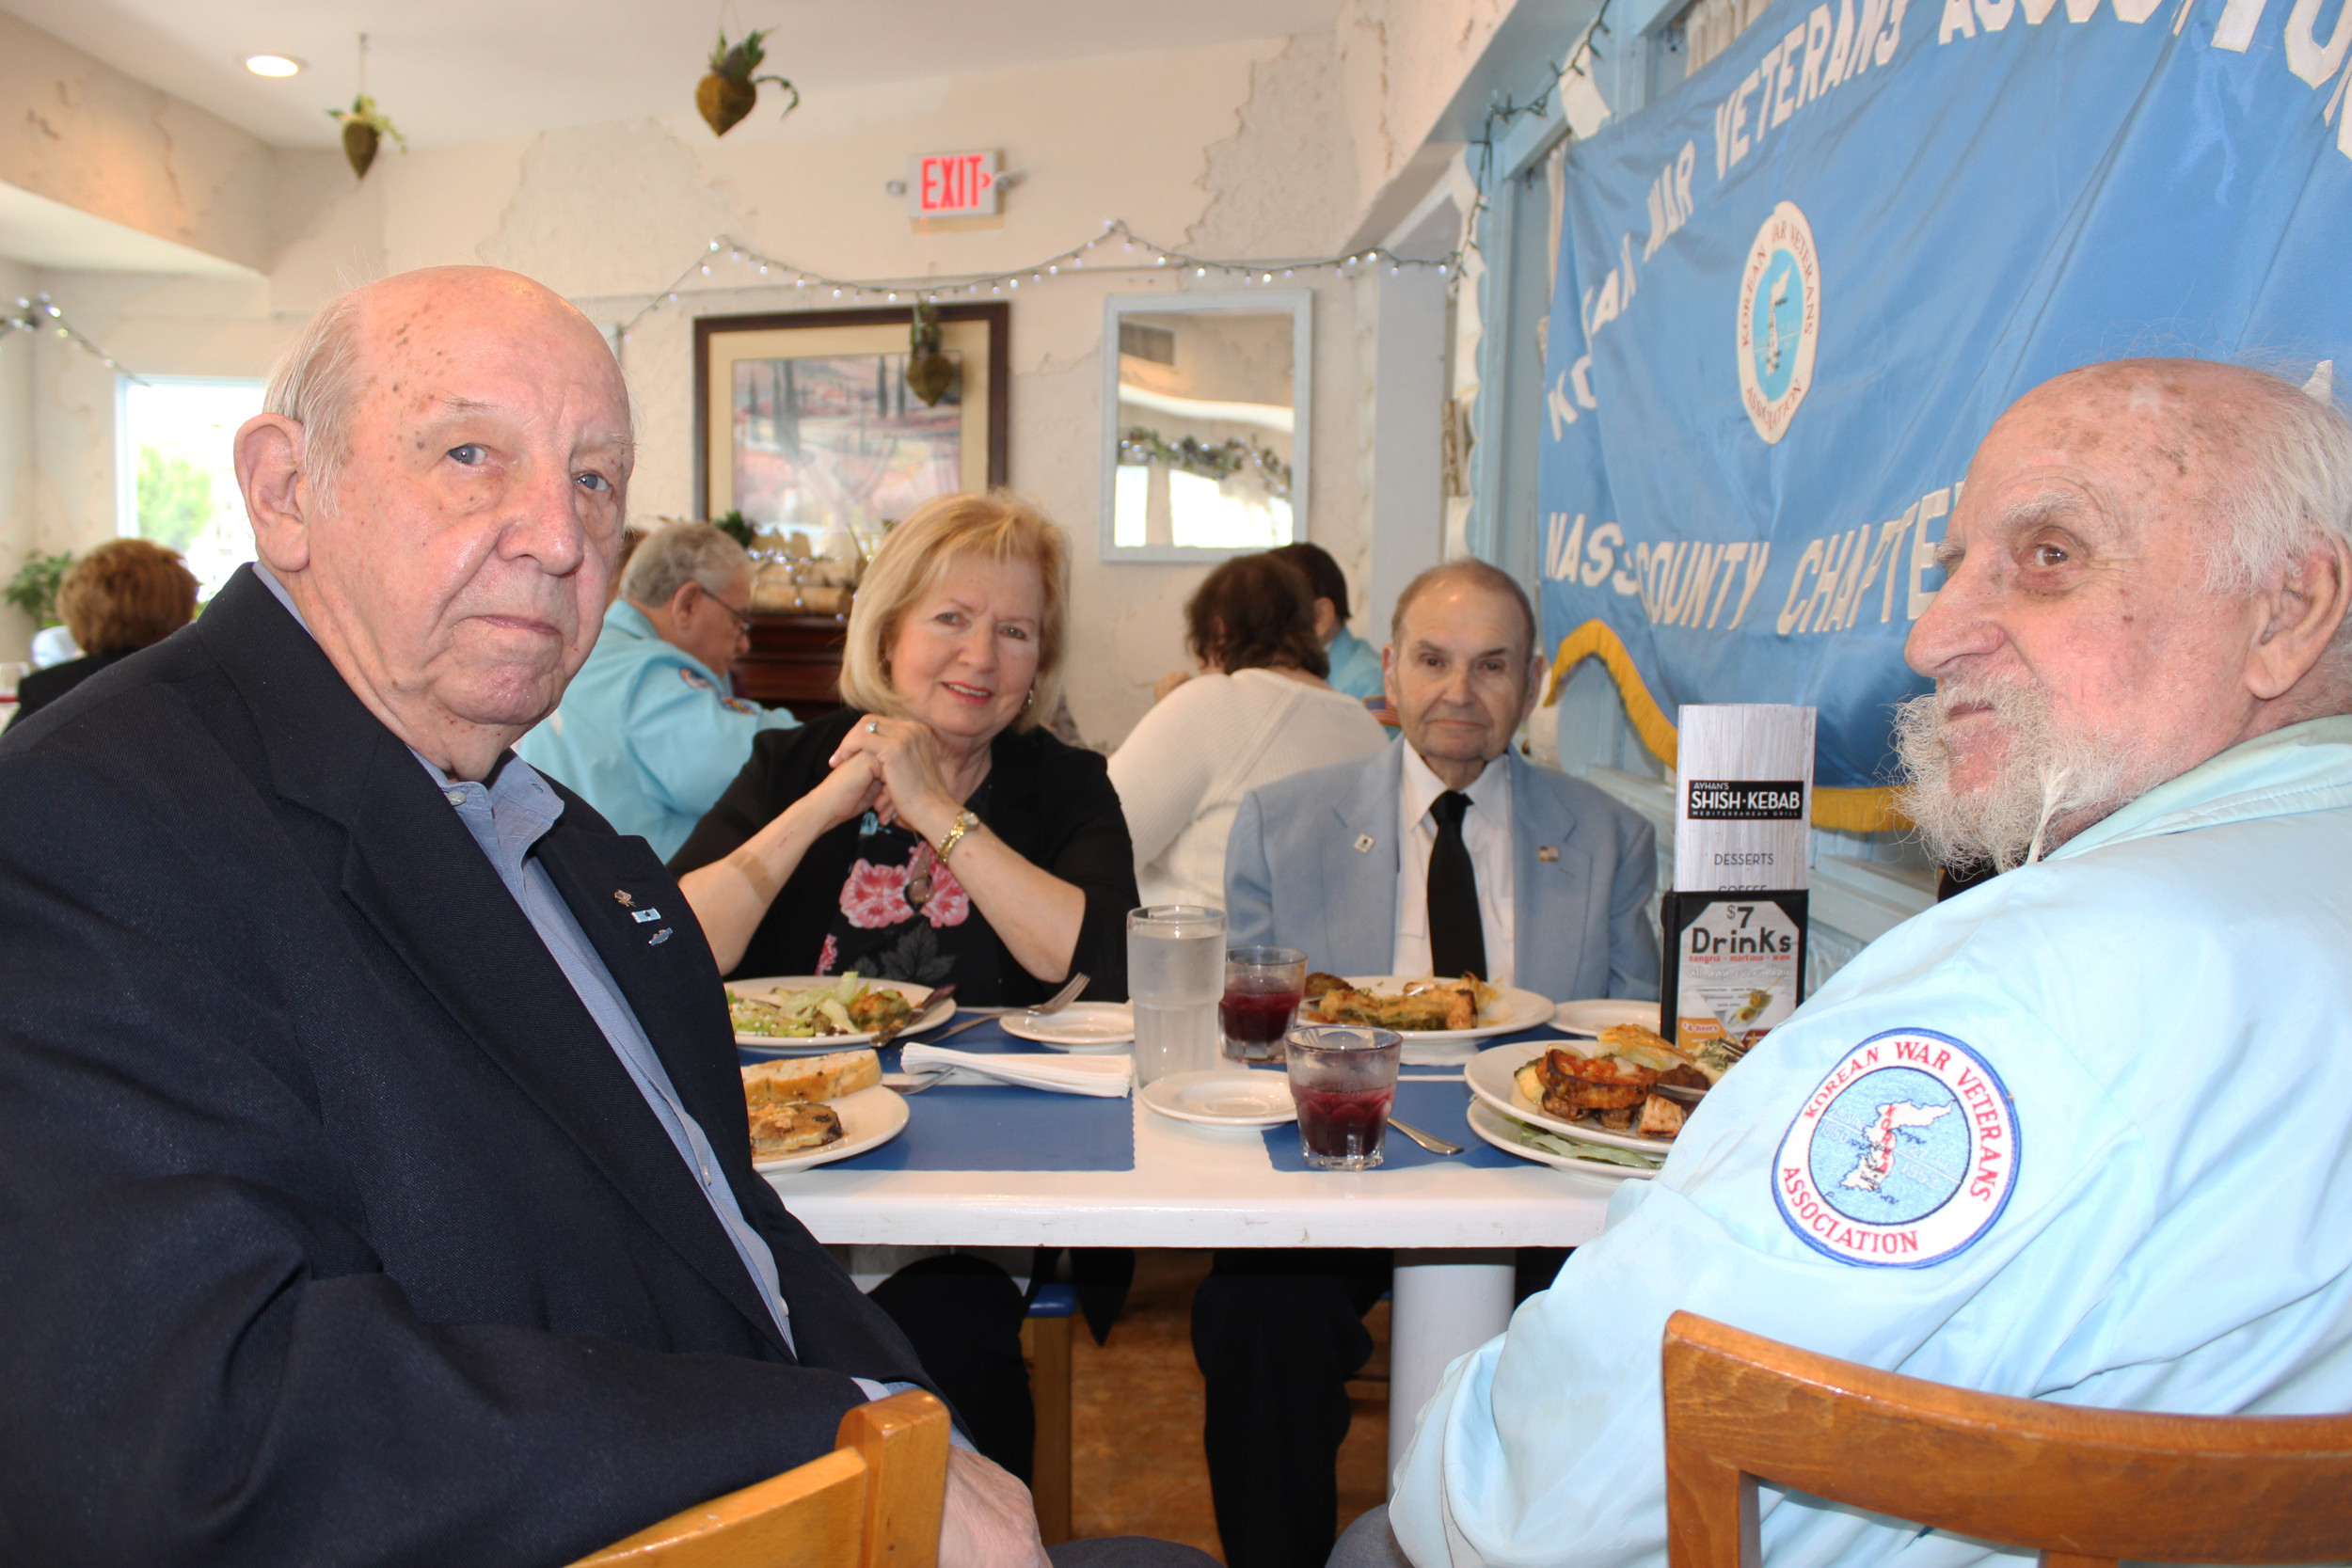 Harold Prummel, 86, of Carle Place, left, said that he joined the Korean War Veterans Association to contribute the comradery it fosters in its members. He is pictured here with Florence and Bernard Hoffman, 85, both of Merrick, and Jack Leff, 88, of Inwood.